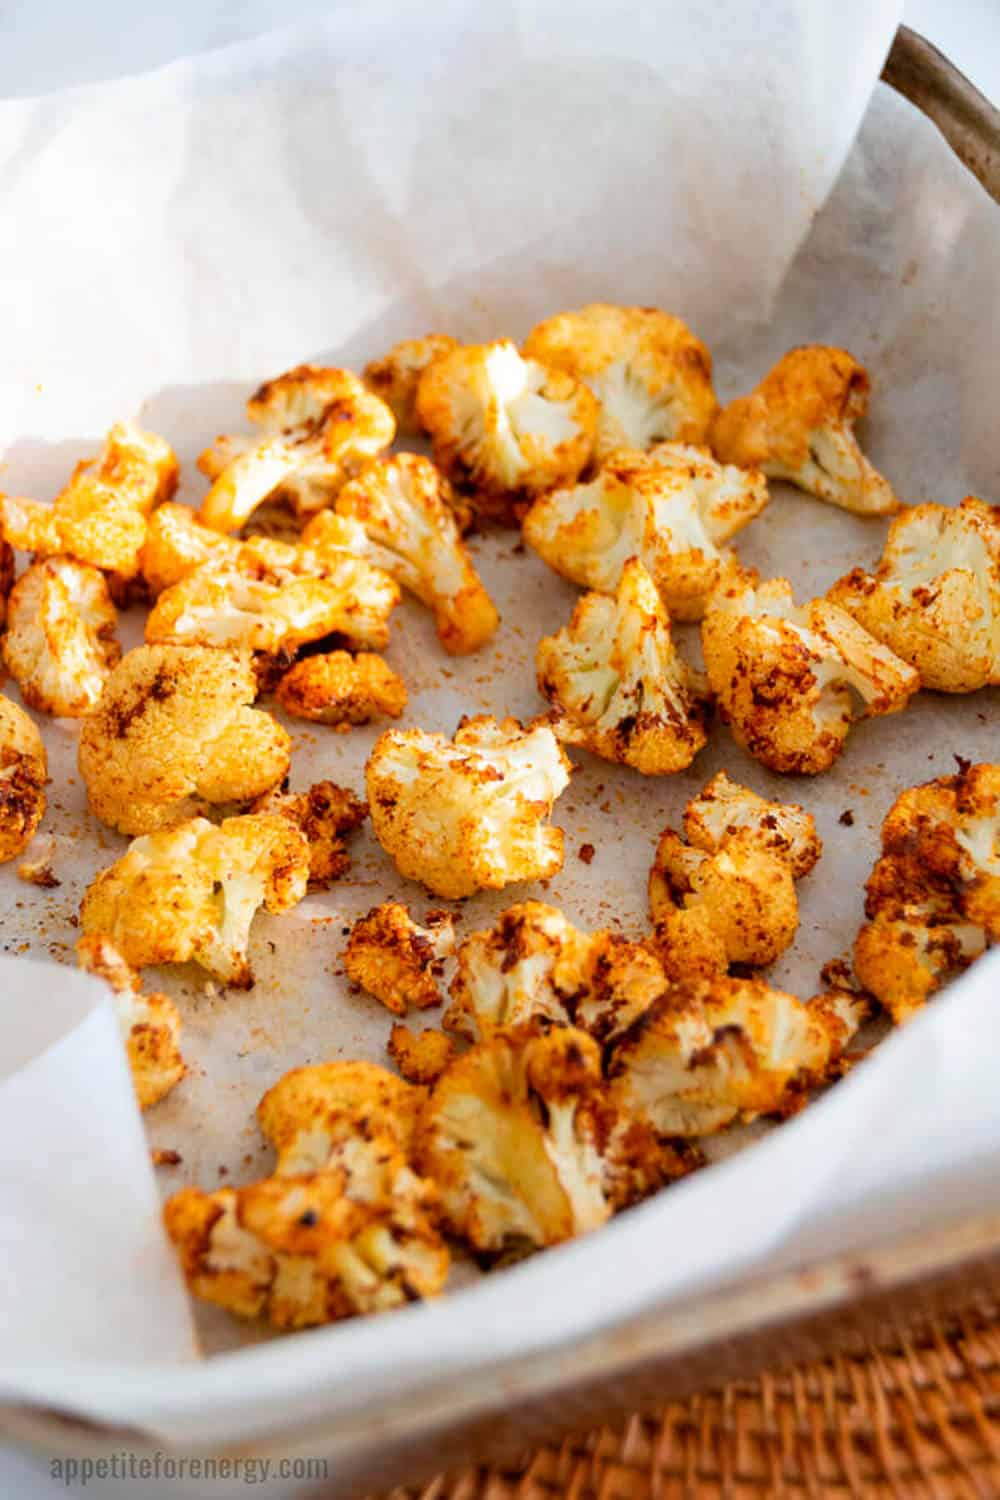 Close up of golden brown, spicy roasted cauliflower in a baking tray with parchment paper